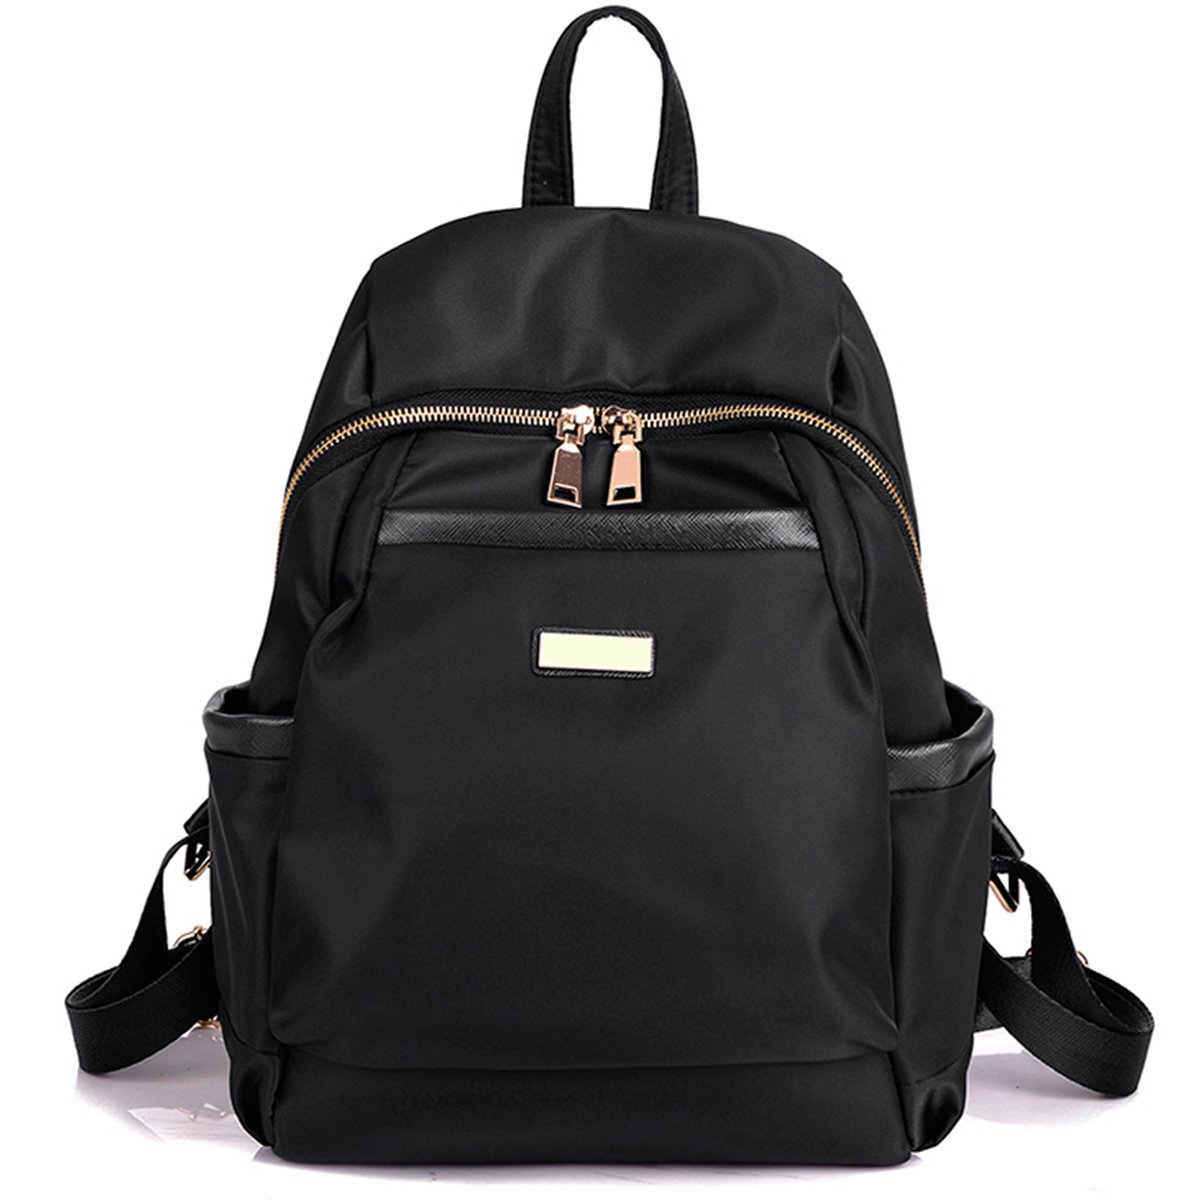 82694fc03158 Amazon.com  Nylon Water-resistant Backpack Bag - Top Handle Rucksack  Lightweight Durable Casual Fashion School Bag Purse for Womens Girls (Black)   Toys   ...